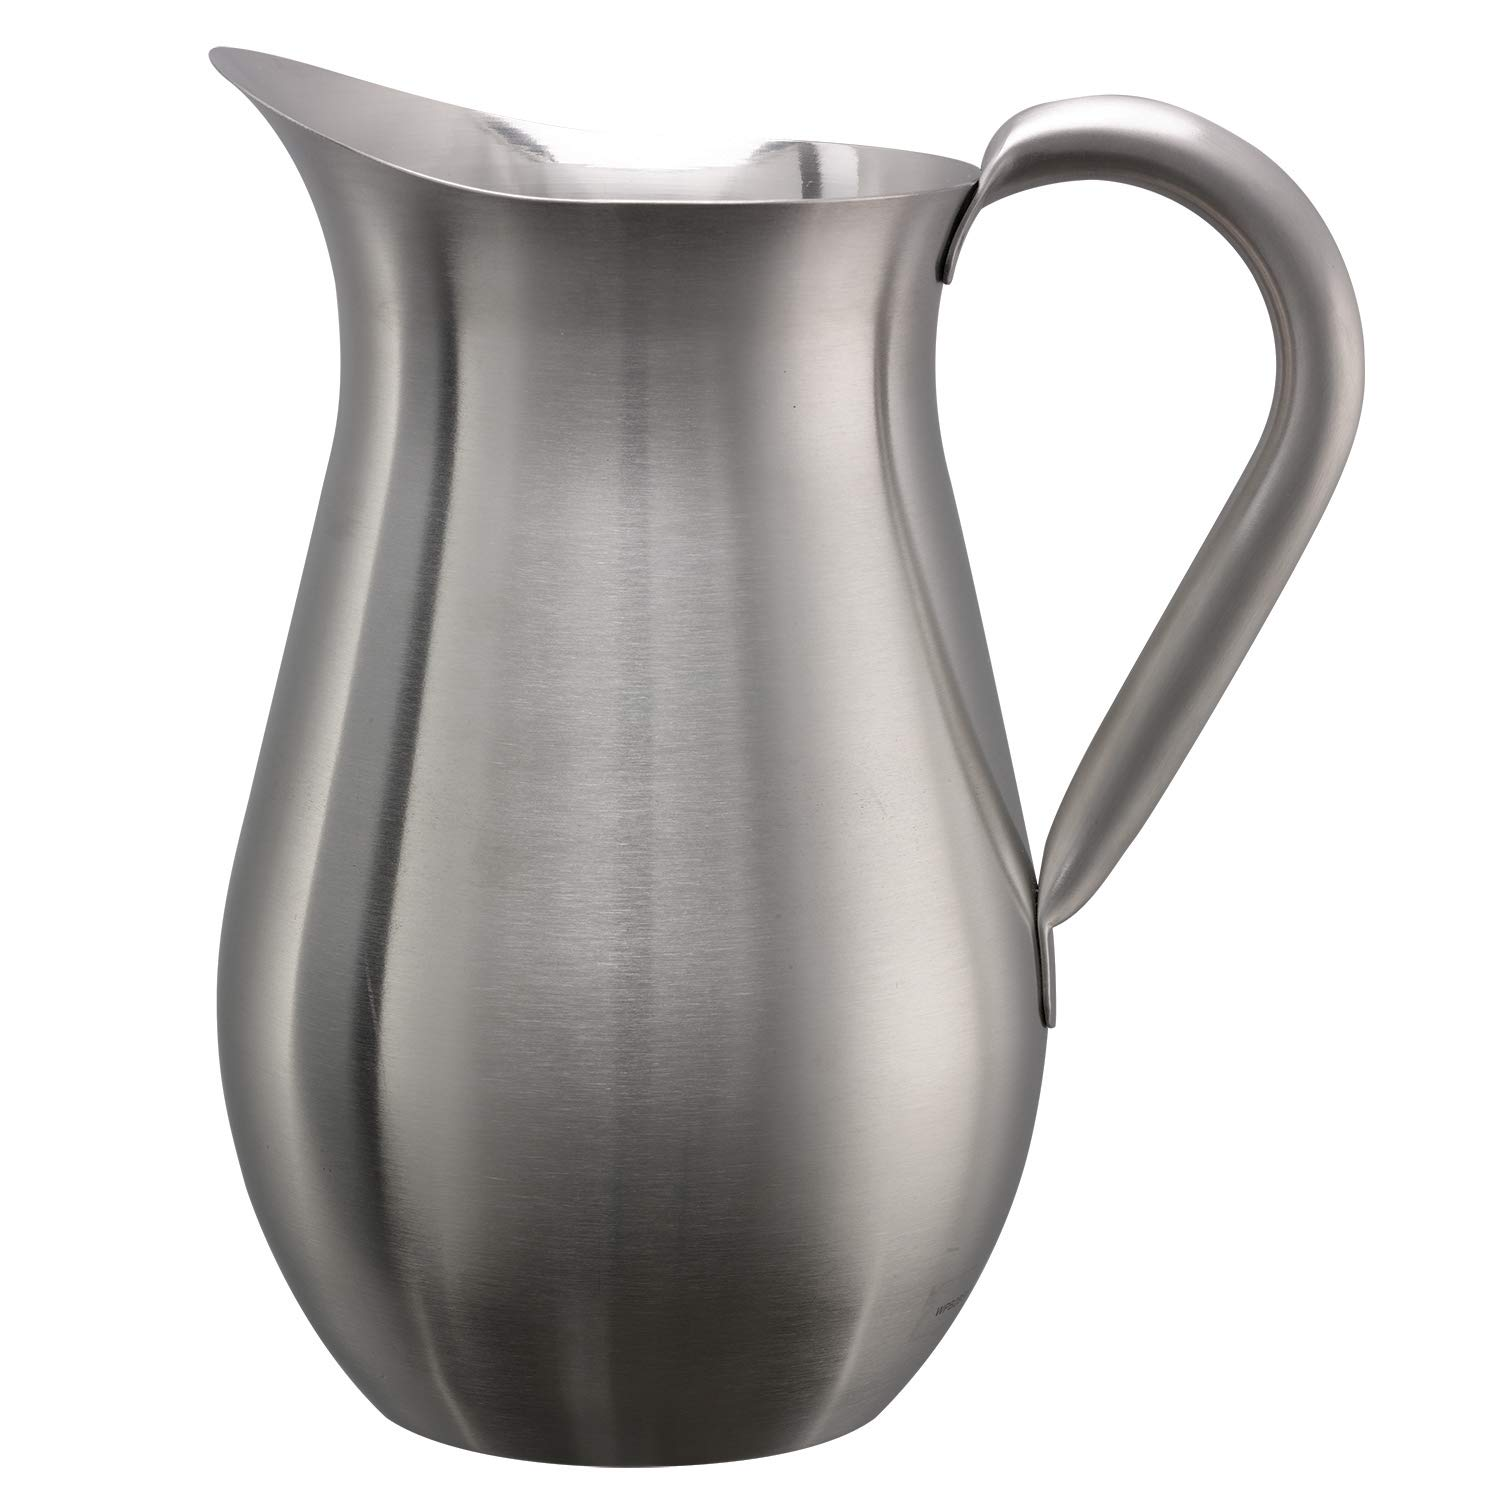 Service Ideas WPB2BSNG Pitcher, Bell Shaped, Brushed, No Guard, 2 L